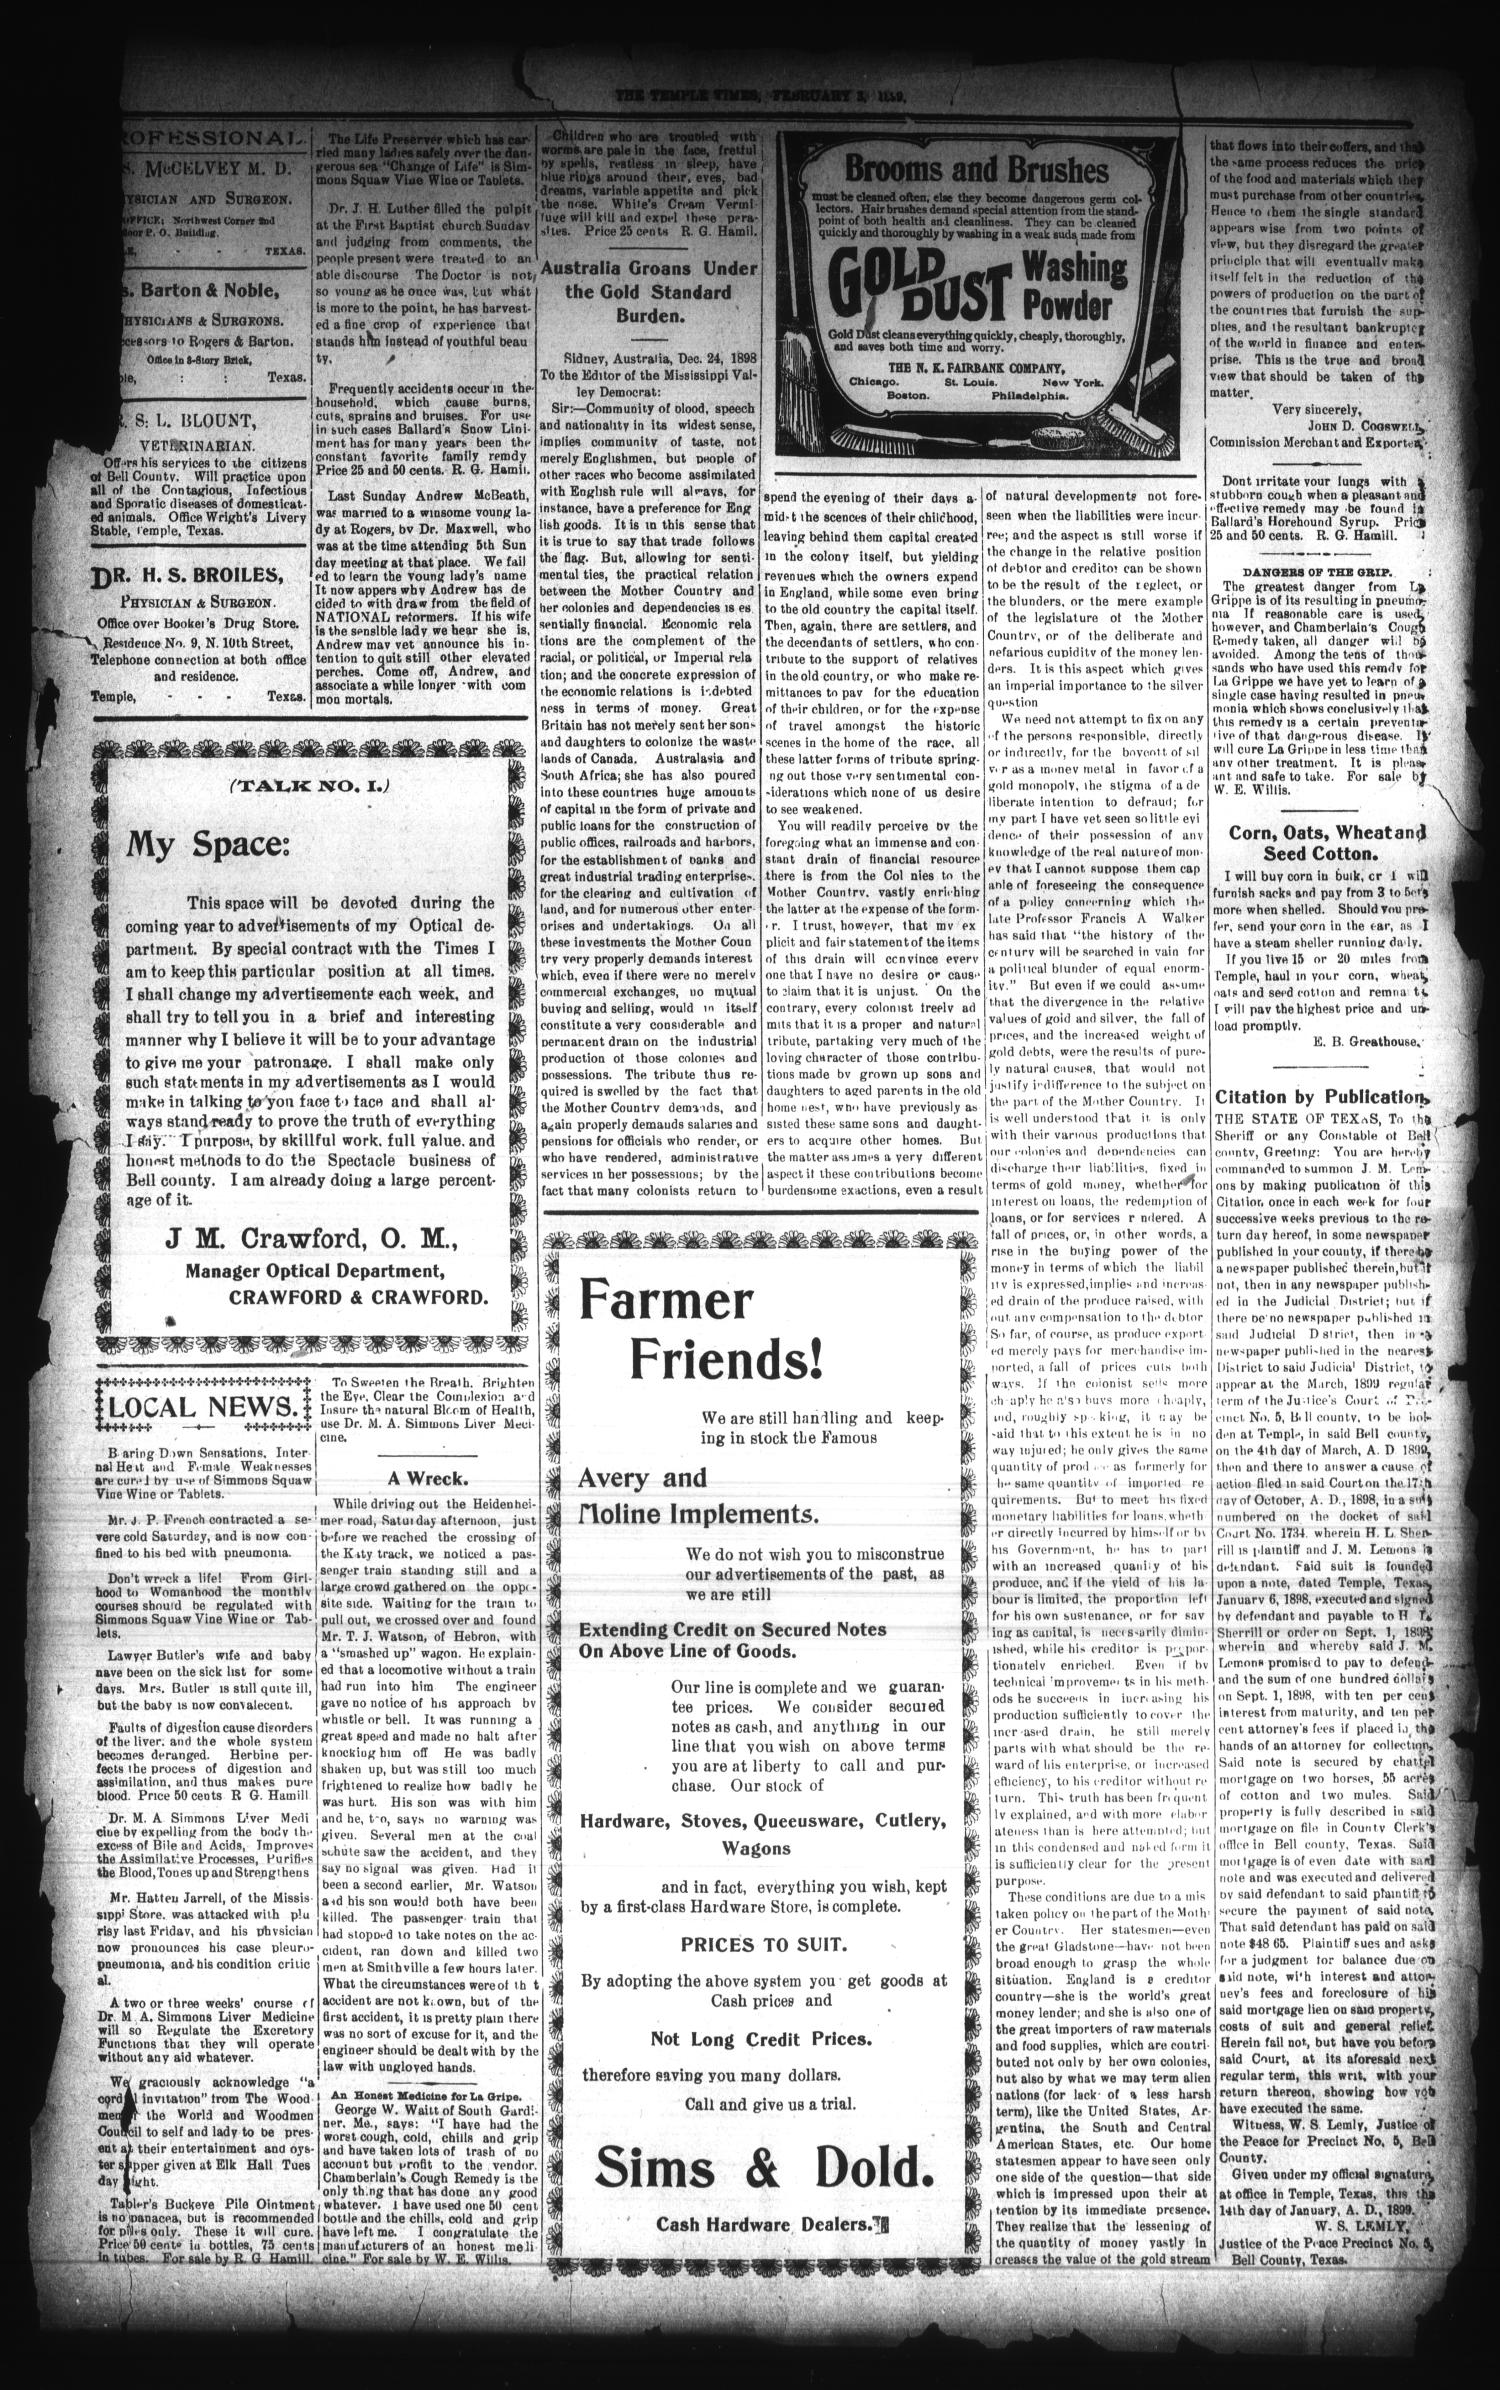 The Temple Times. (Temple, Tex.), Vol. 18, No. 8, Ed. 1 Friday, February 3, 1899                                                                                                      [Sequence #]: 3 of 8